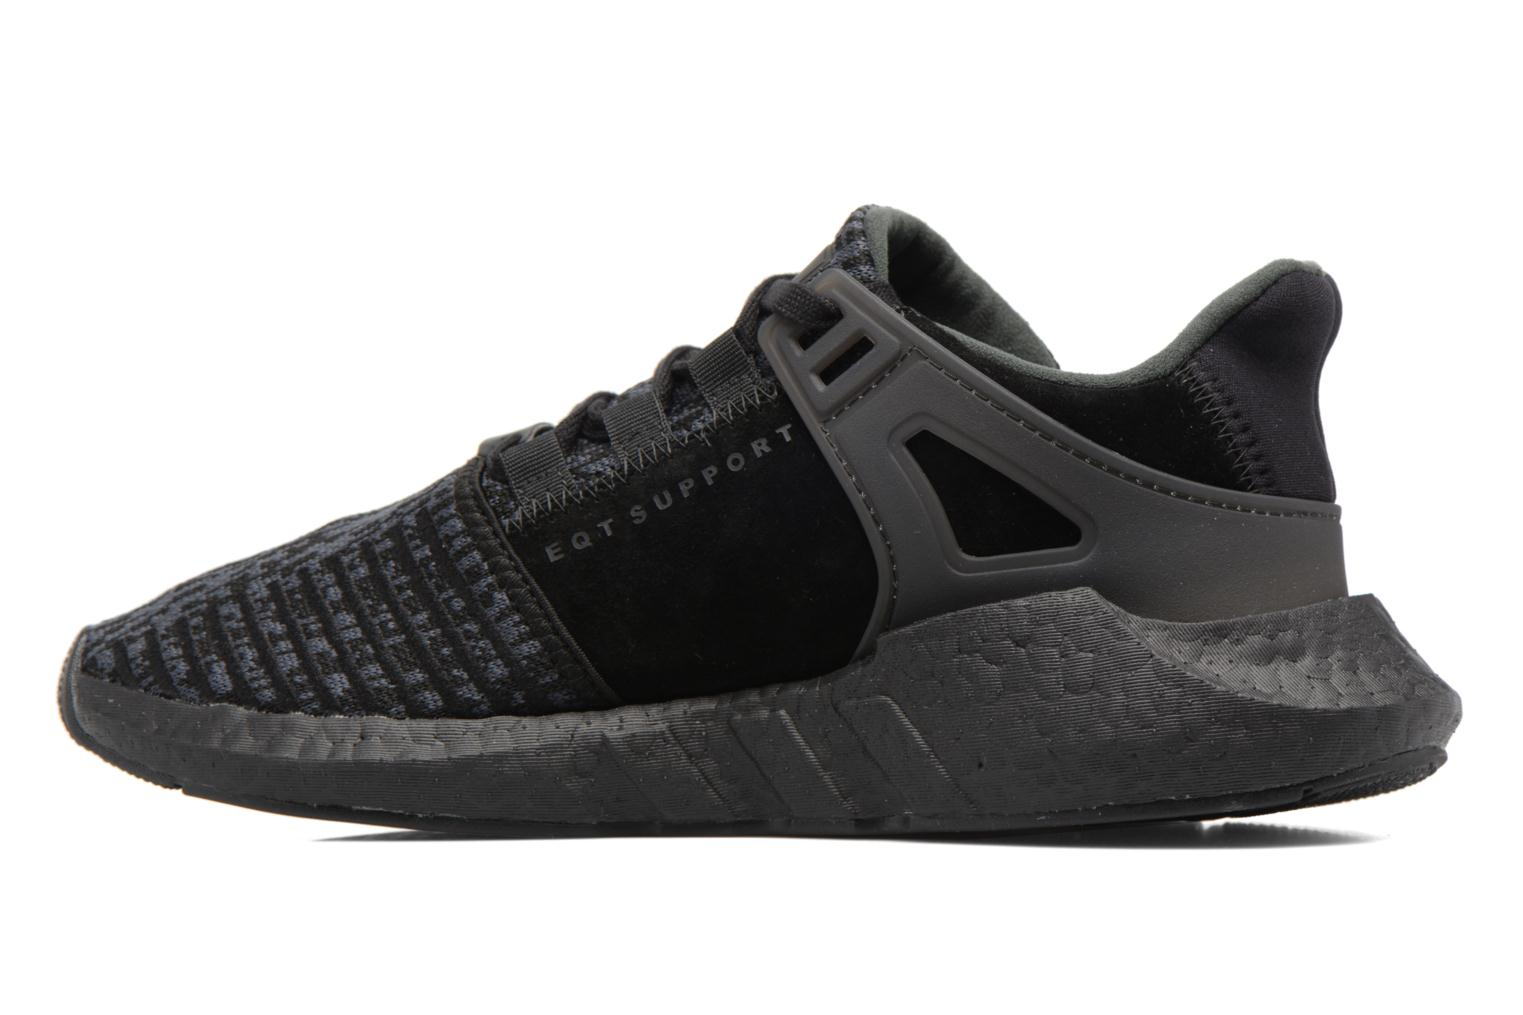 Baskets Adidas Originals Eqt Support 93/17 Noir vue face